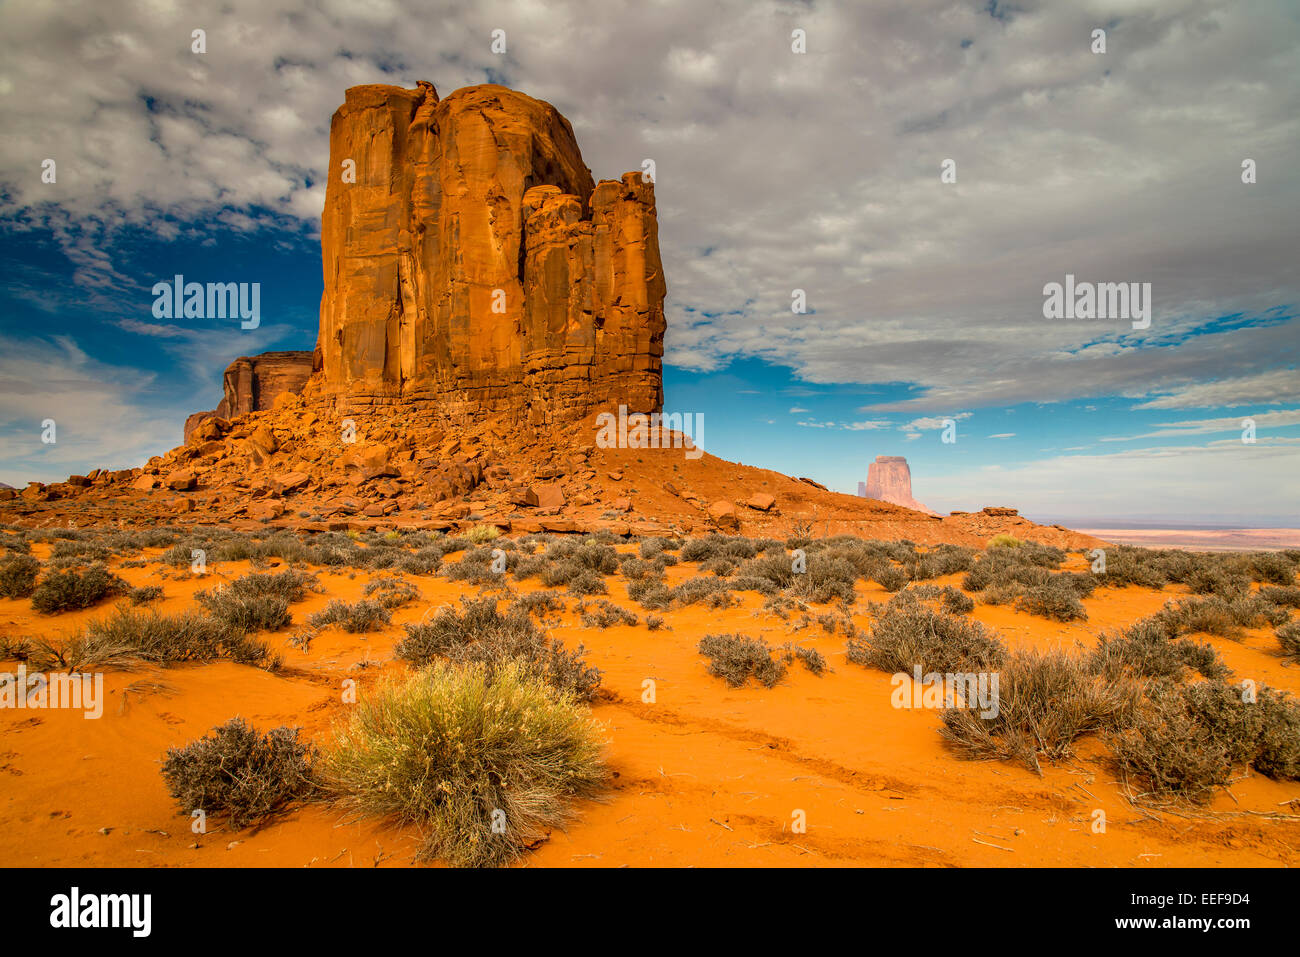 East Mitten Butte, Monument Valley Navajo Tribal Park, Arizona, USA - Stock Image